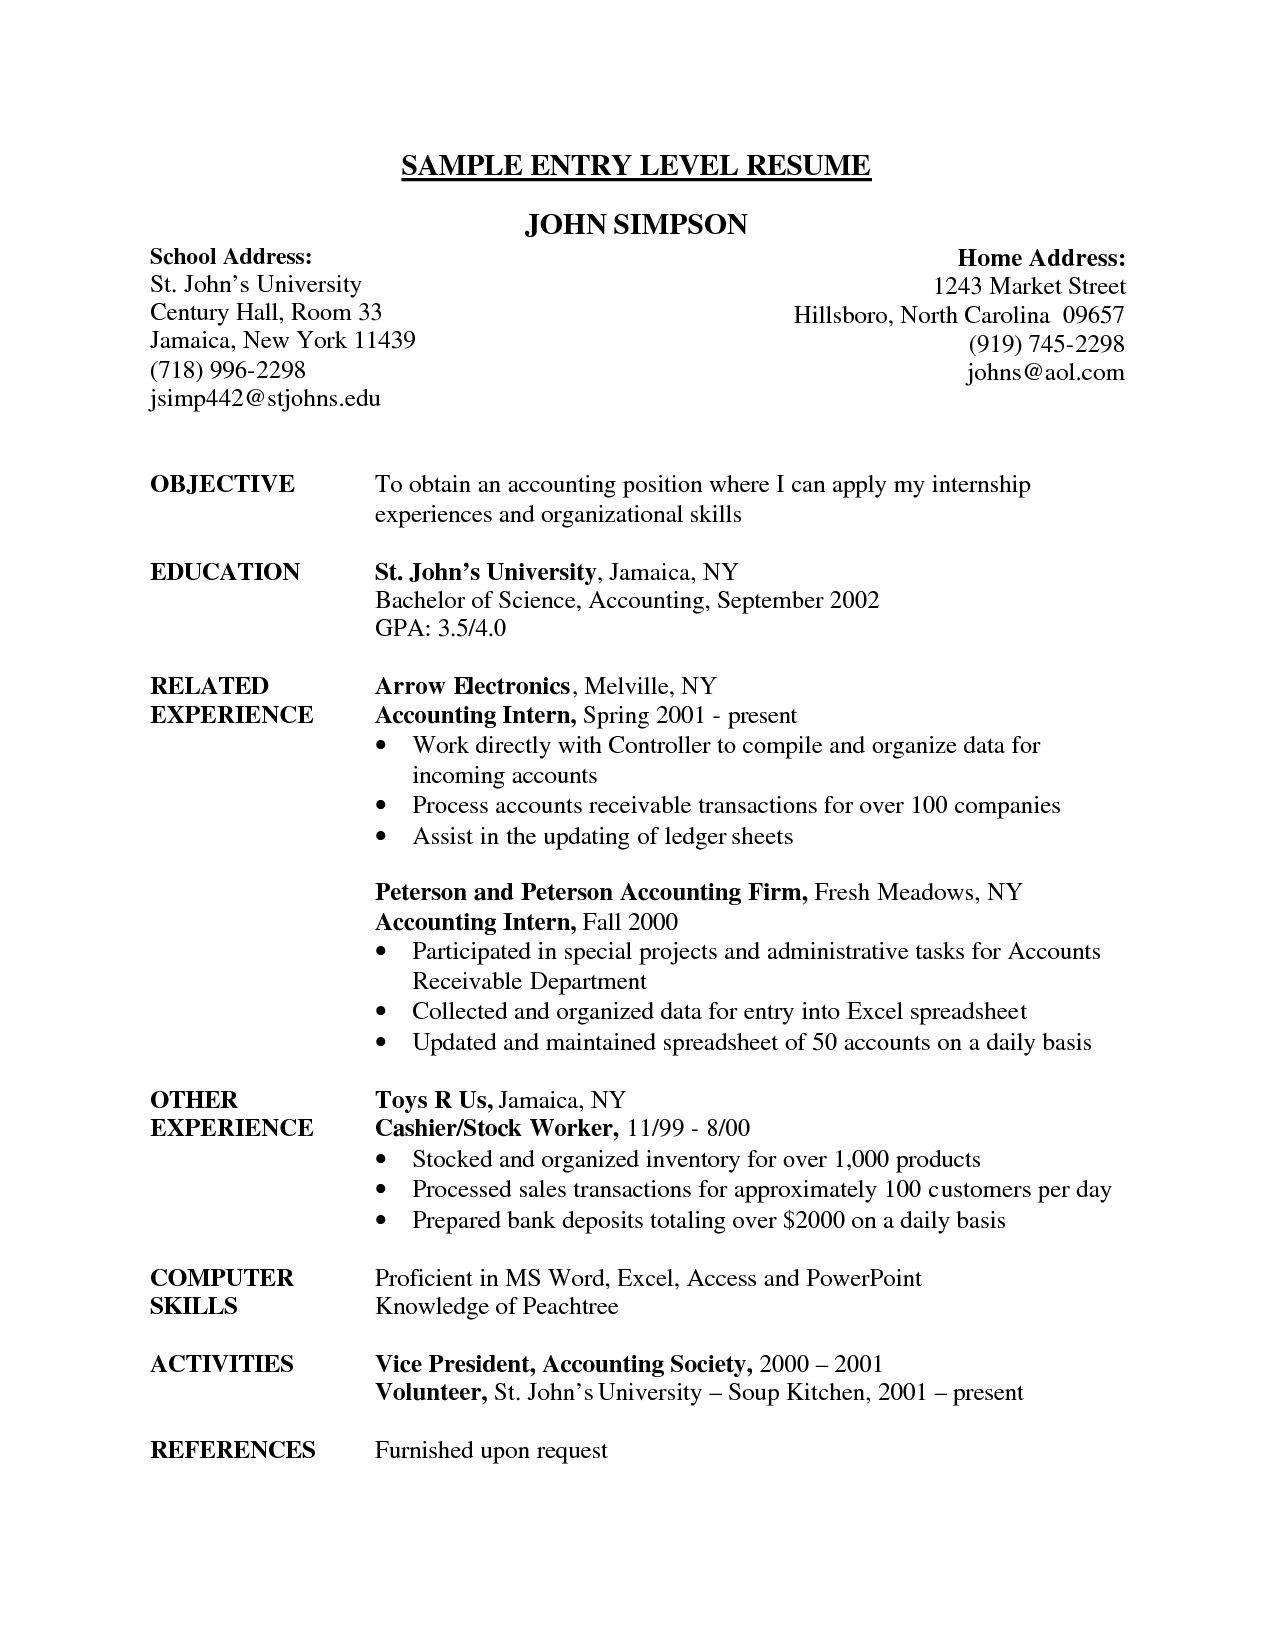 Career Objective Statement Examples Interesting Resume Examples Entry Level  Resume Examples  Pinterest  Resume .